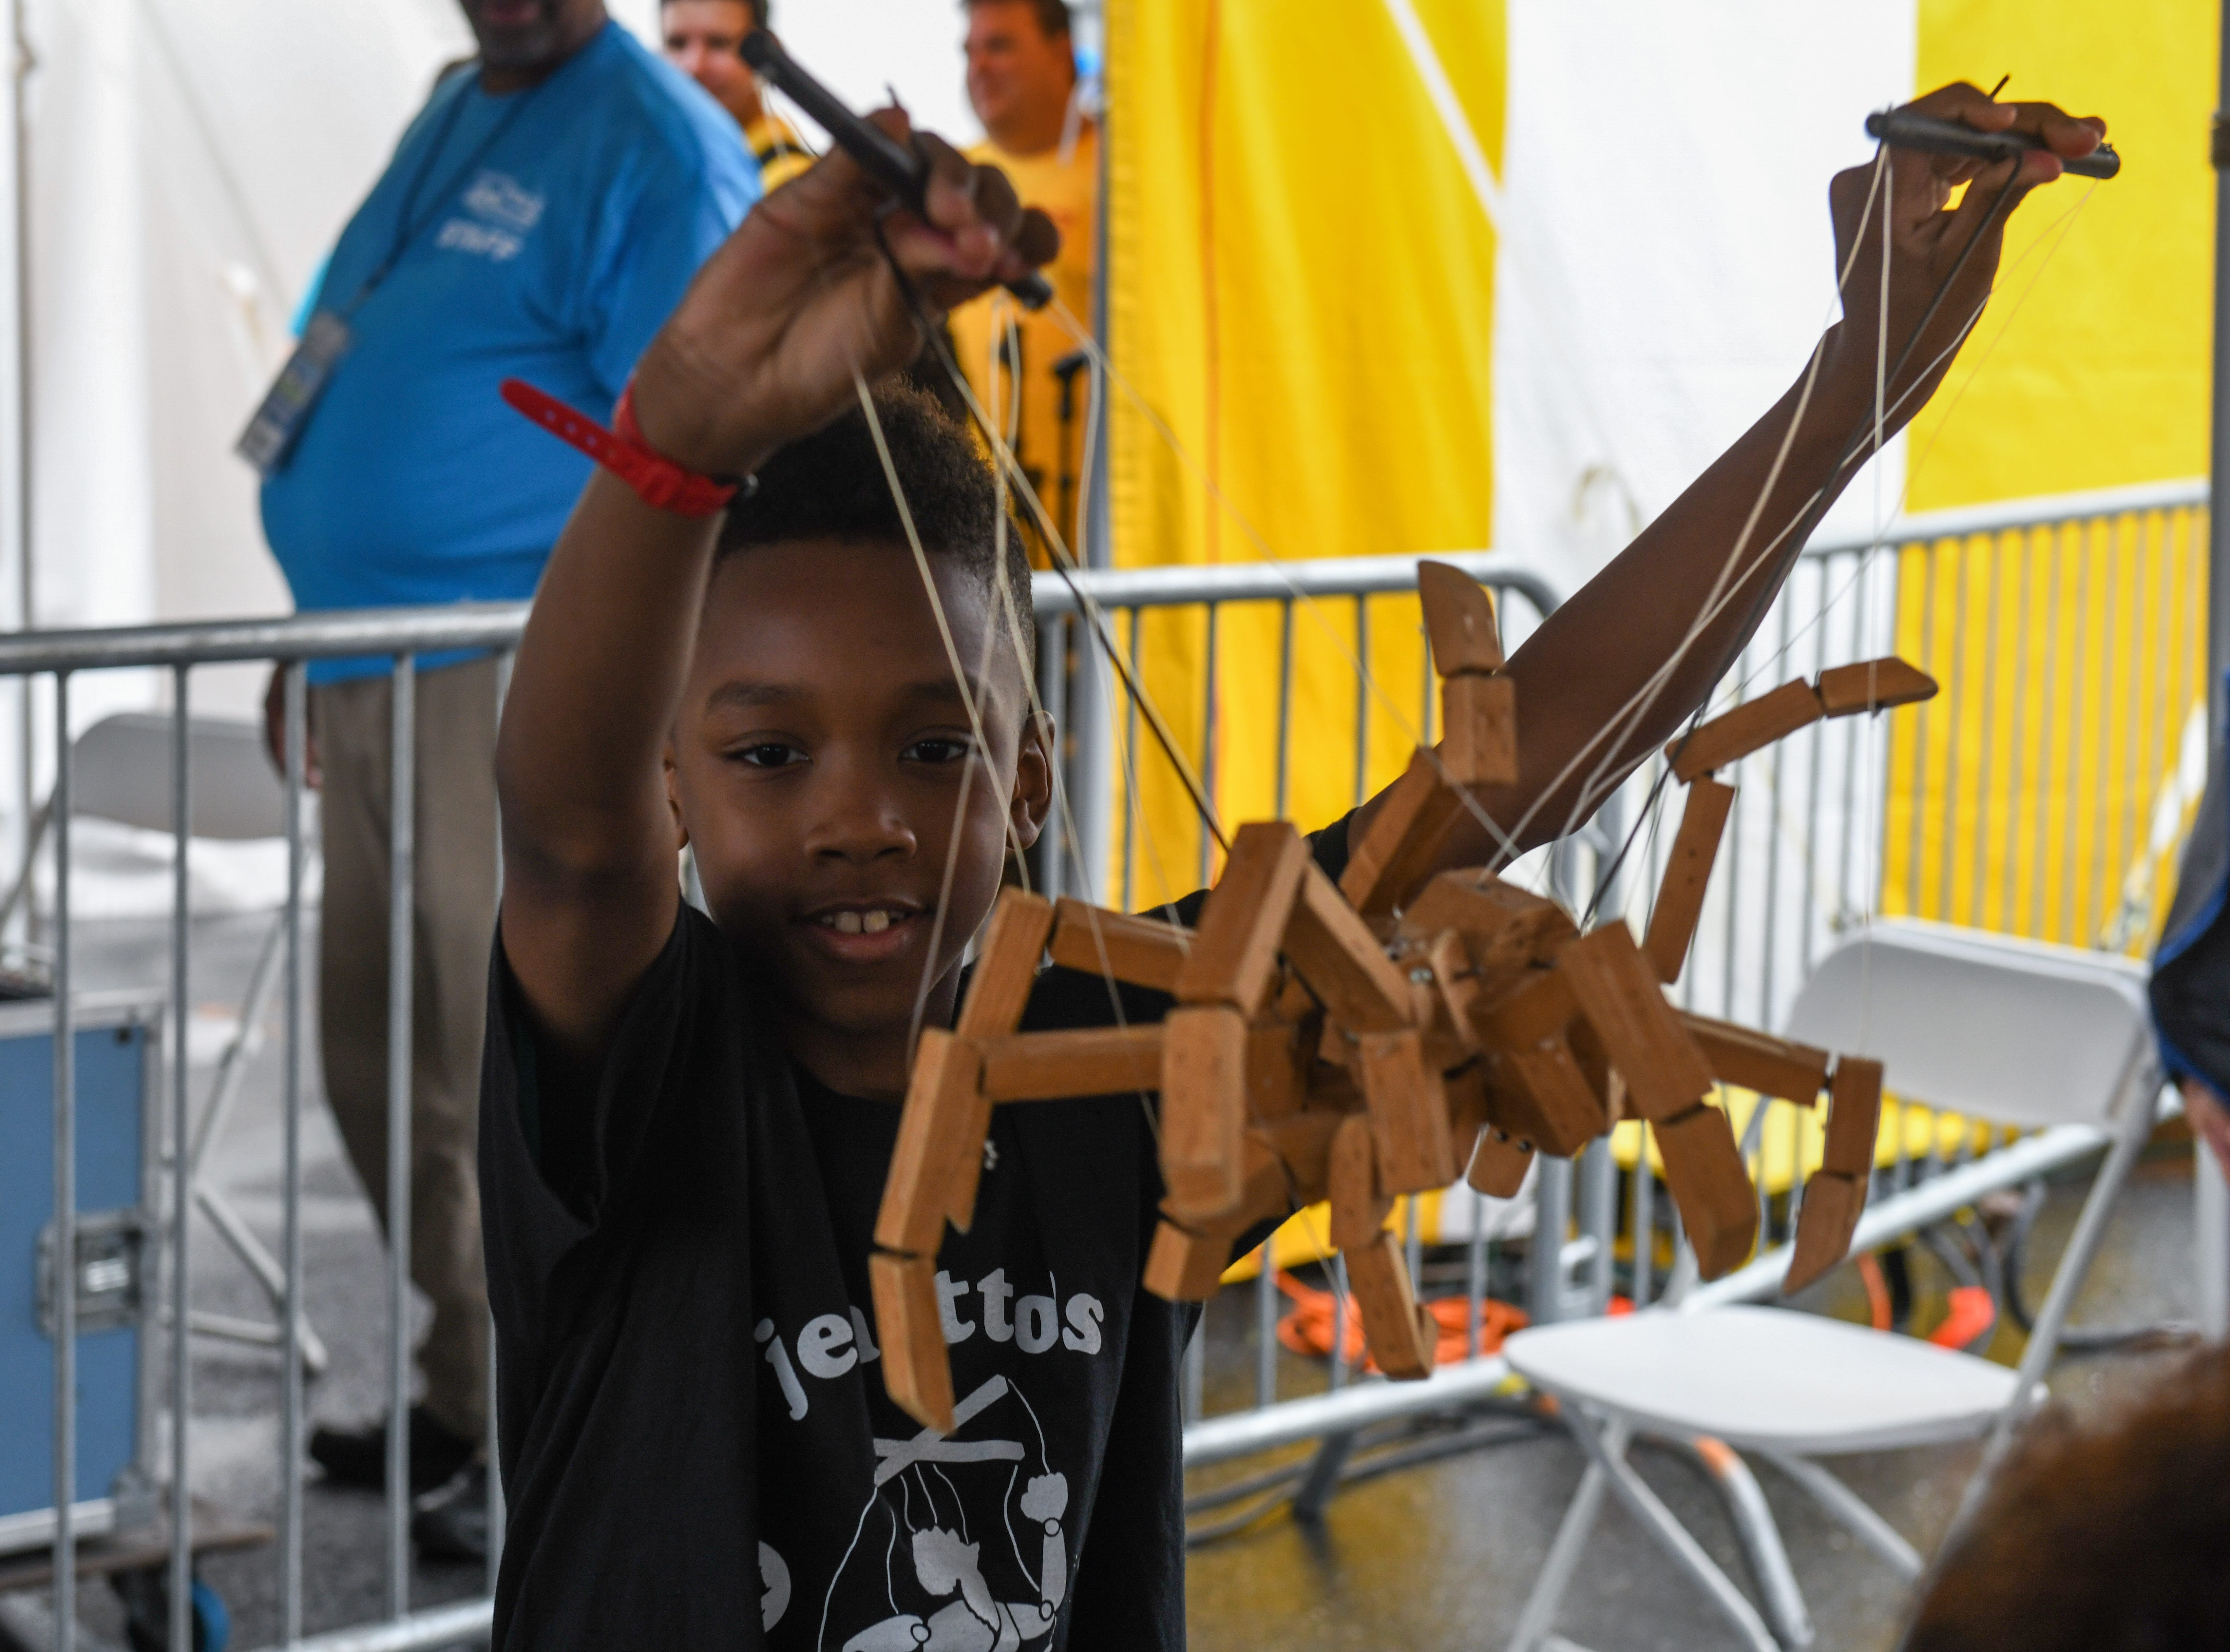 Tarin Papkins performs with the Jeghetto puppetry group at the National Folk Festival in Salisbury on Saturday, Sept. 8.